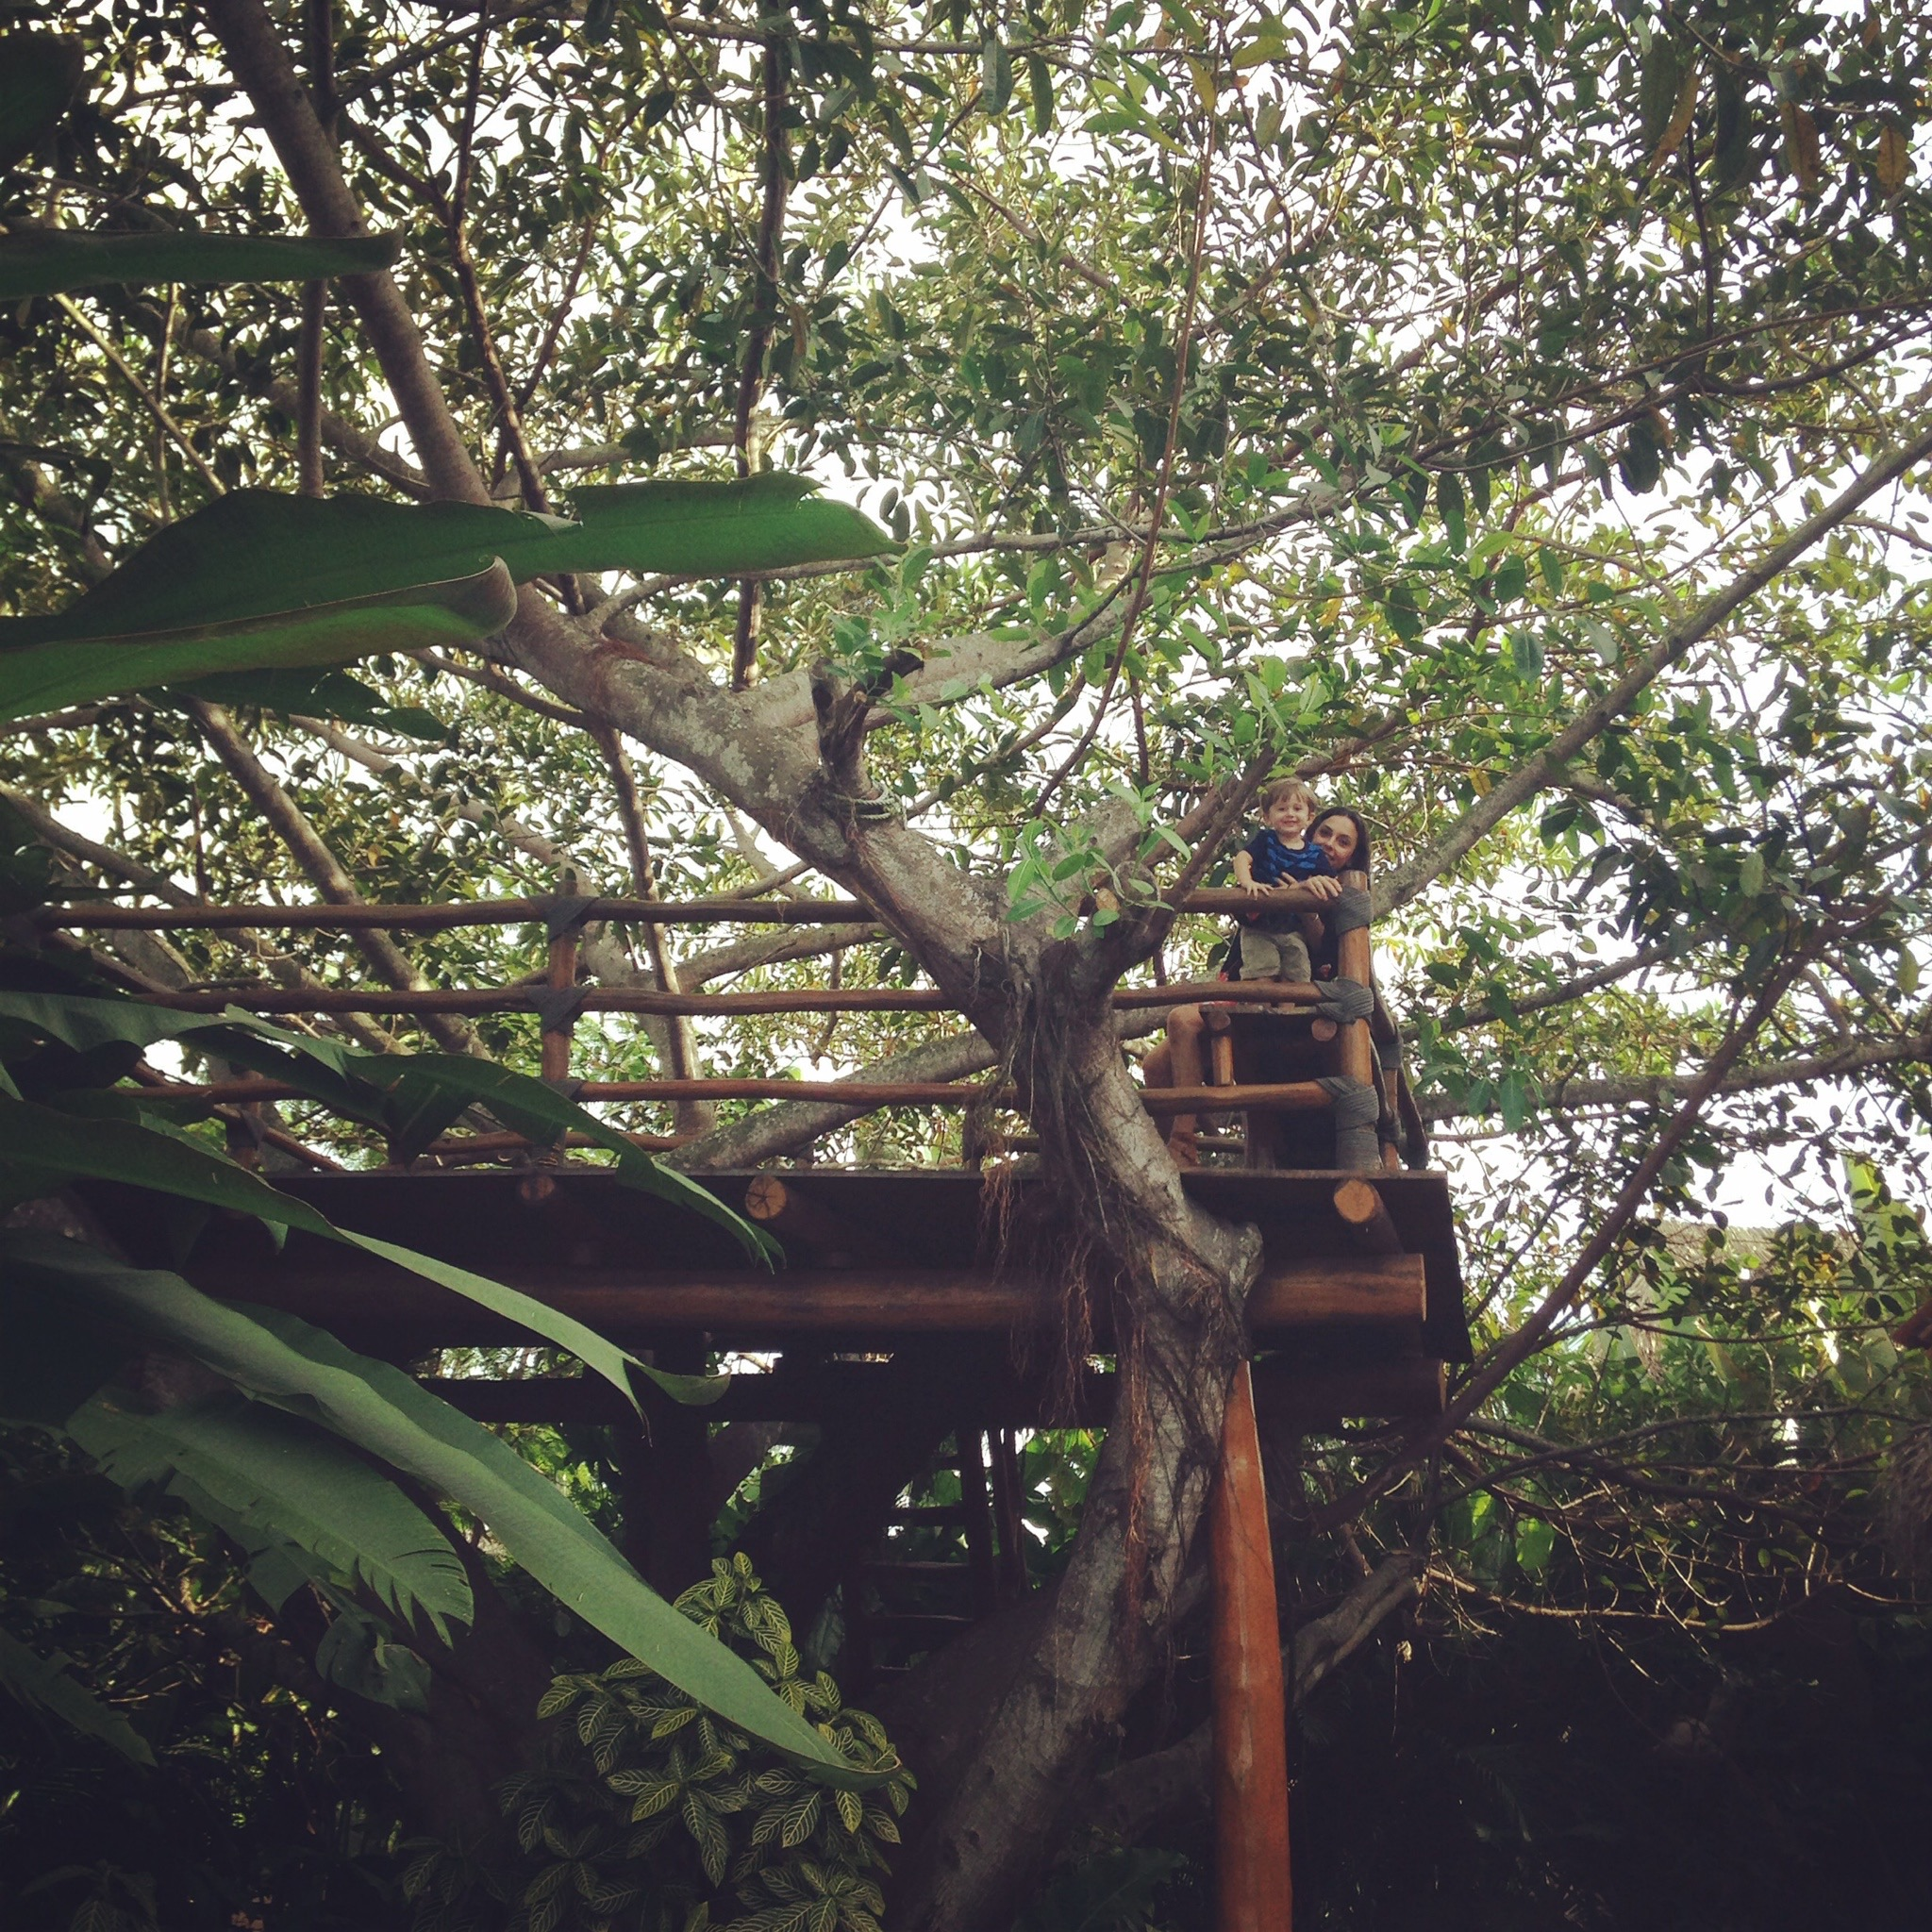 Yes, that's a treehouse in the backyard!